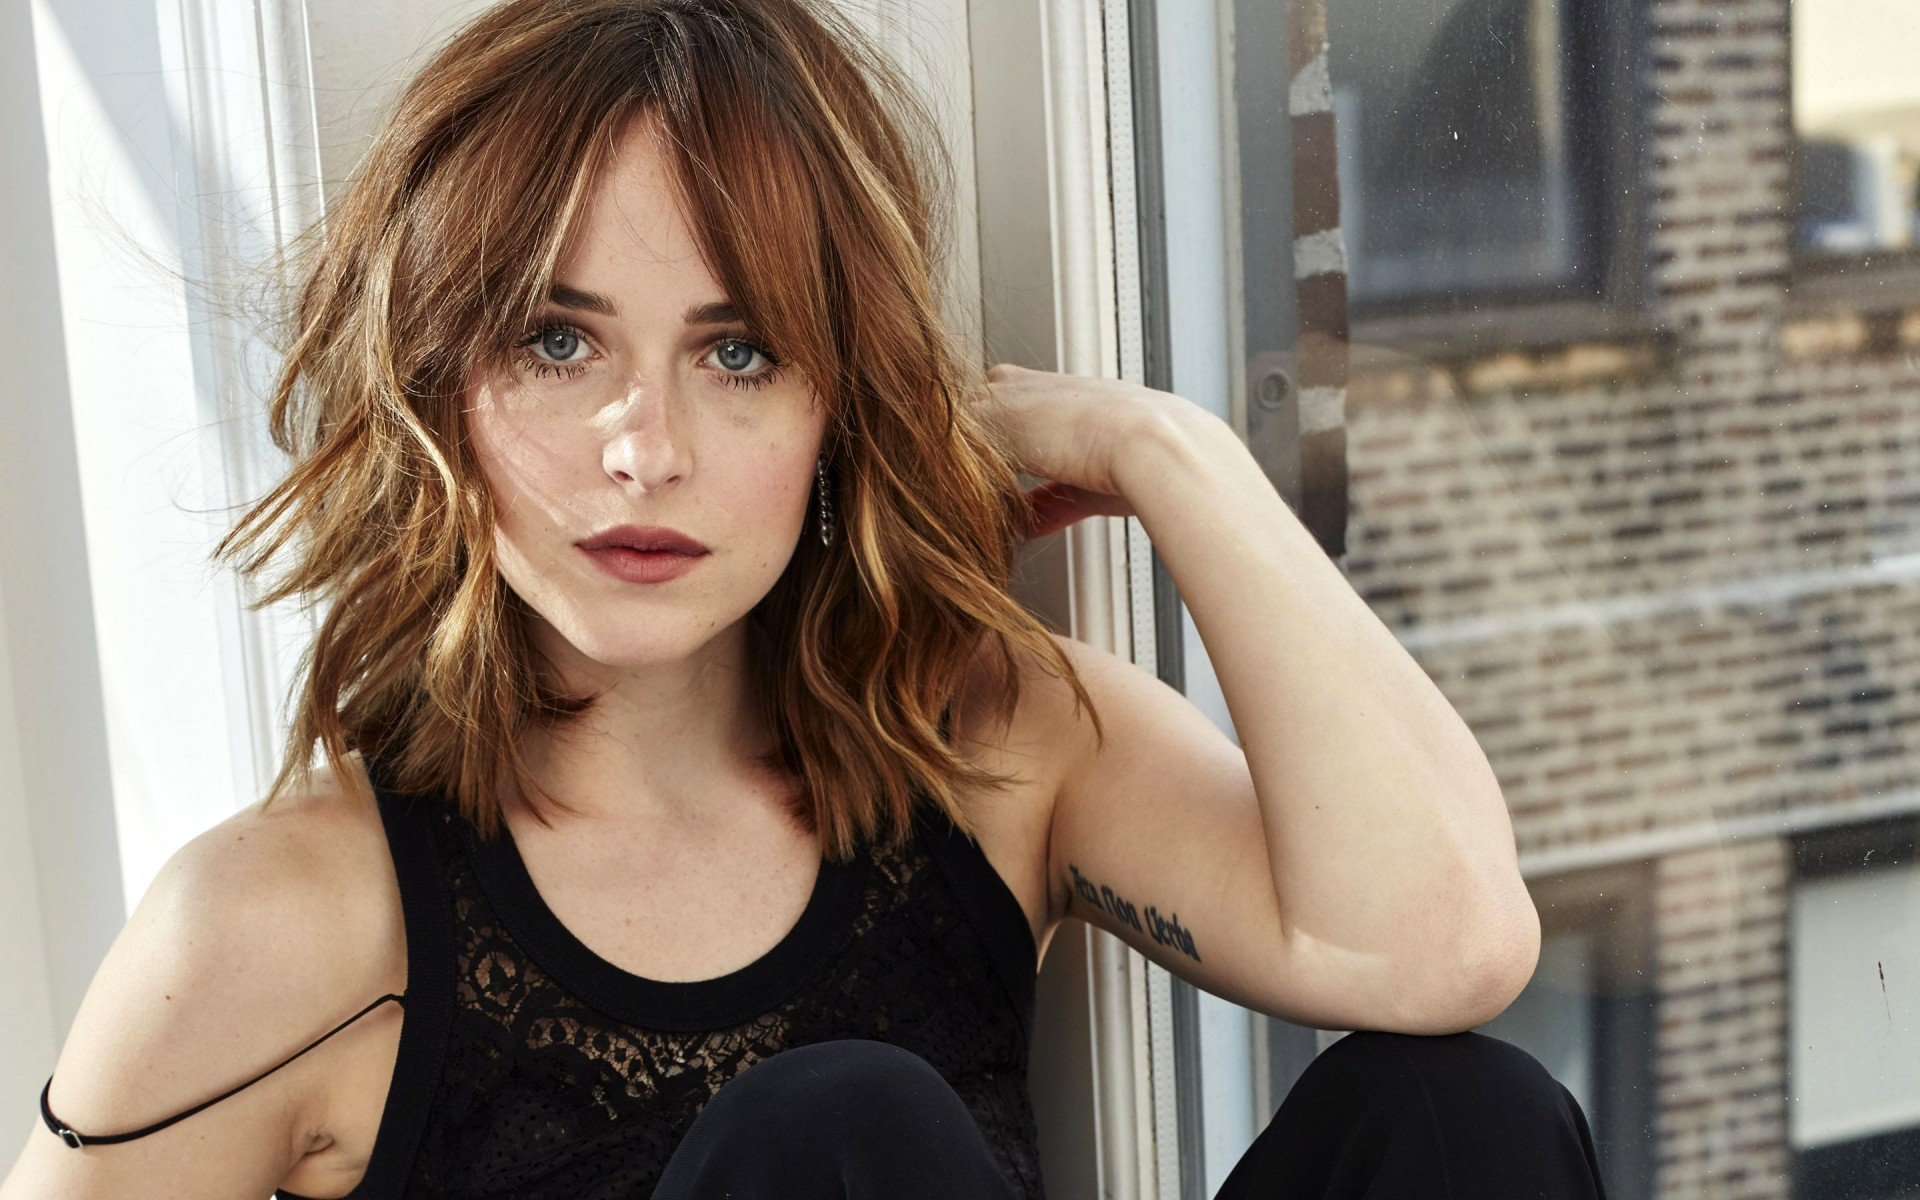 Dakota Johnson window - Dakota Johnson Net Worth, Movies, Family, Boyfriend, Pictures and Wallpapers